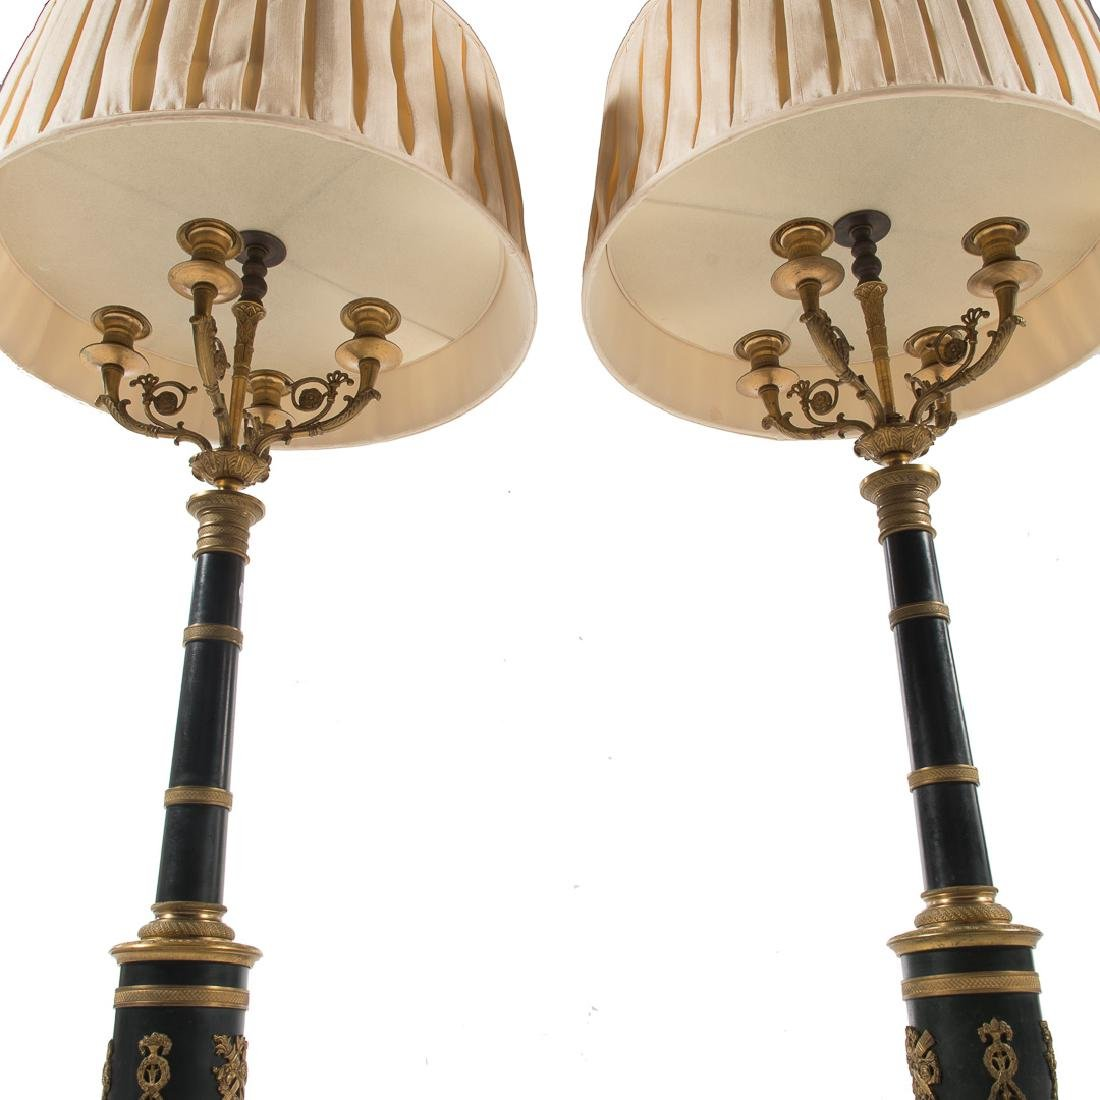 Pair French Empire style bronze lamps - 7